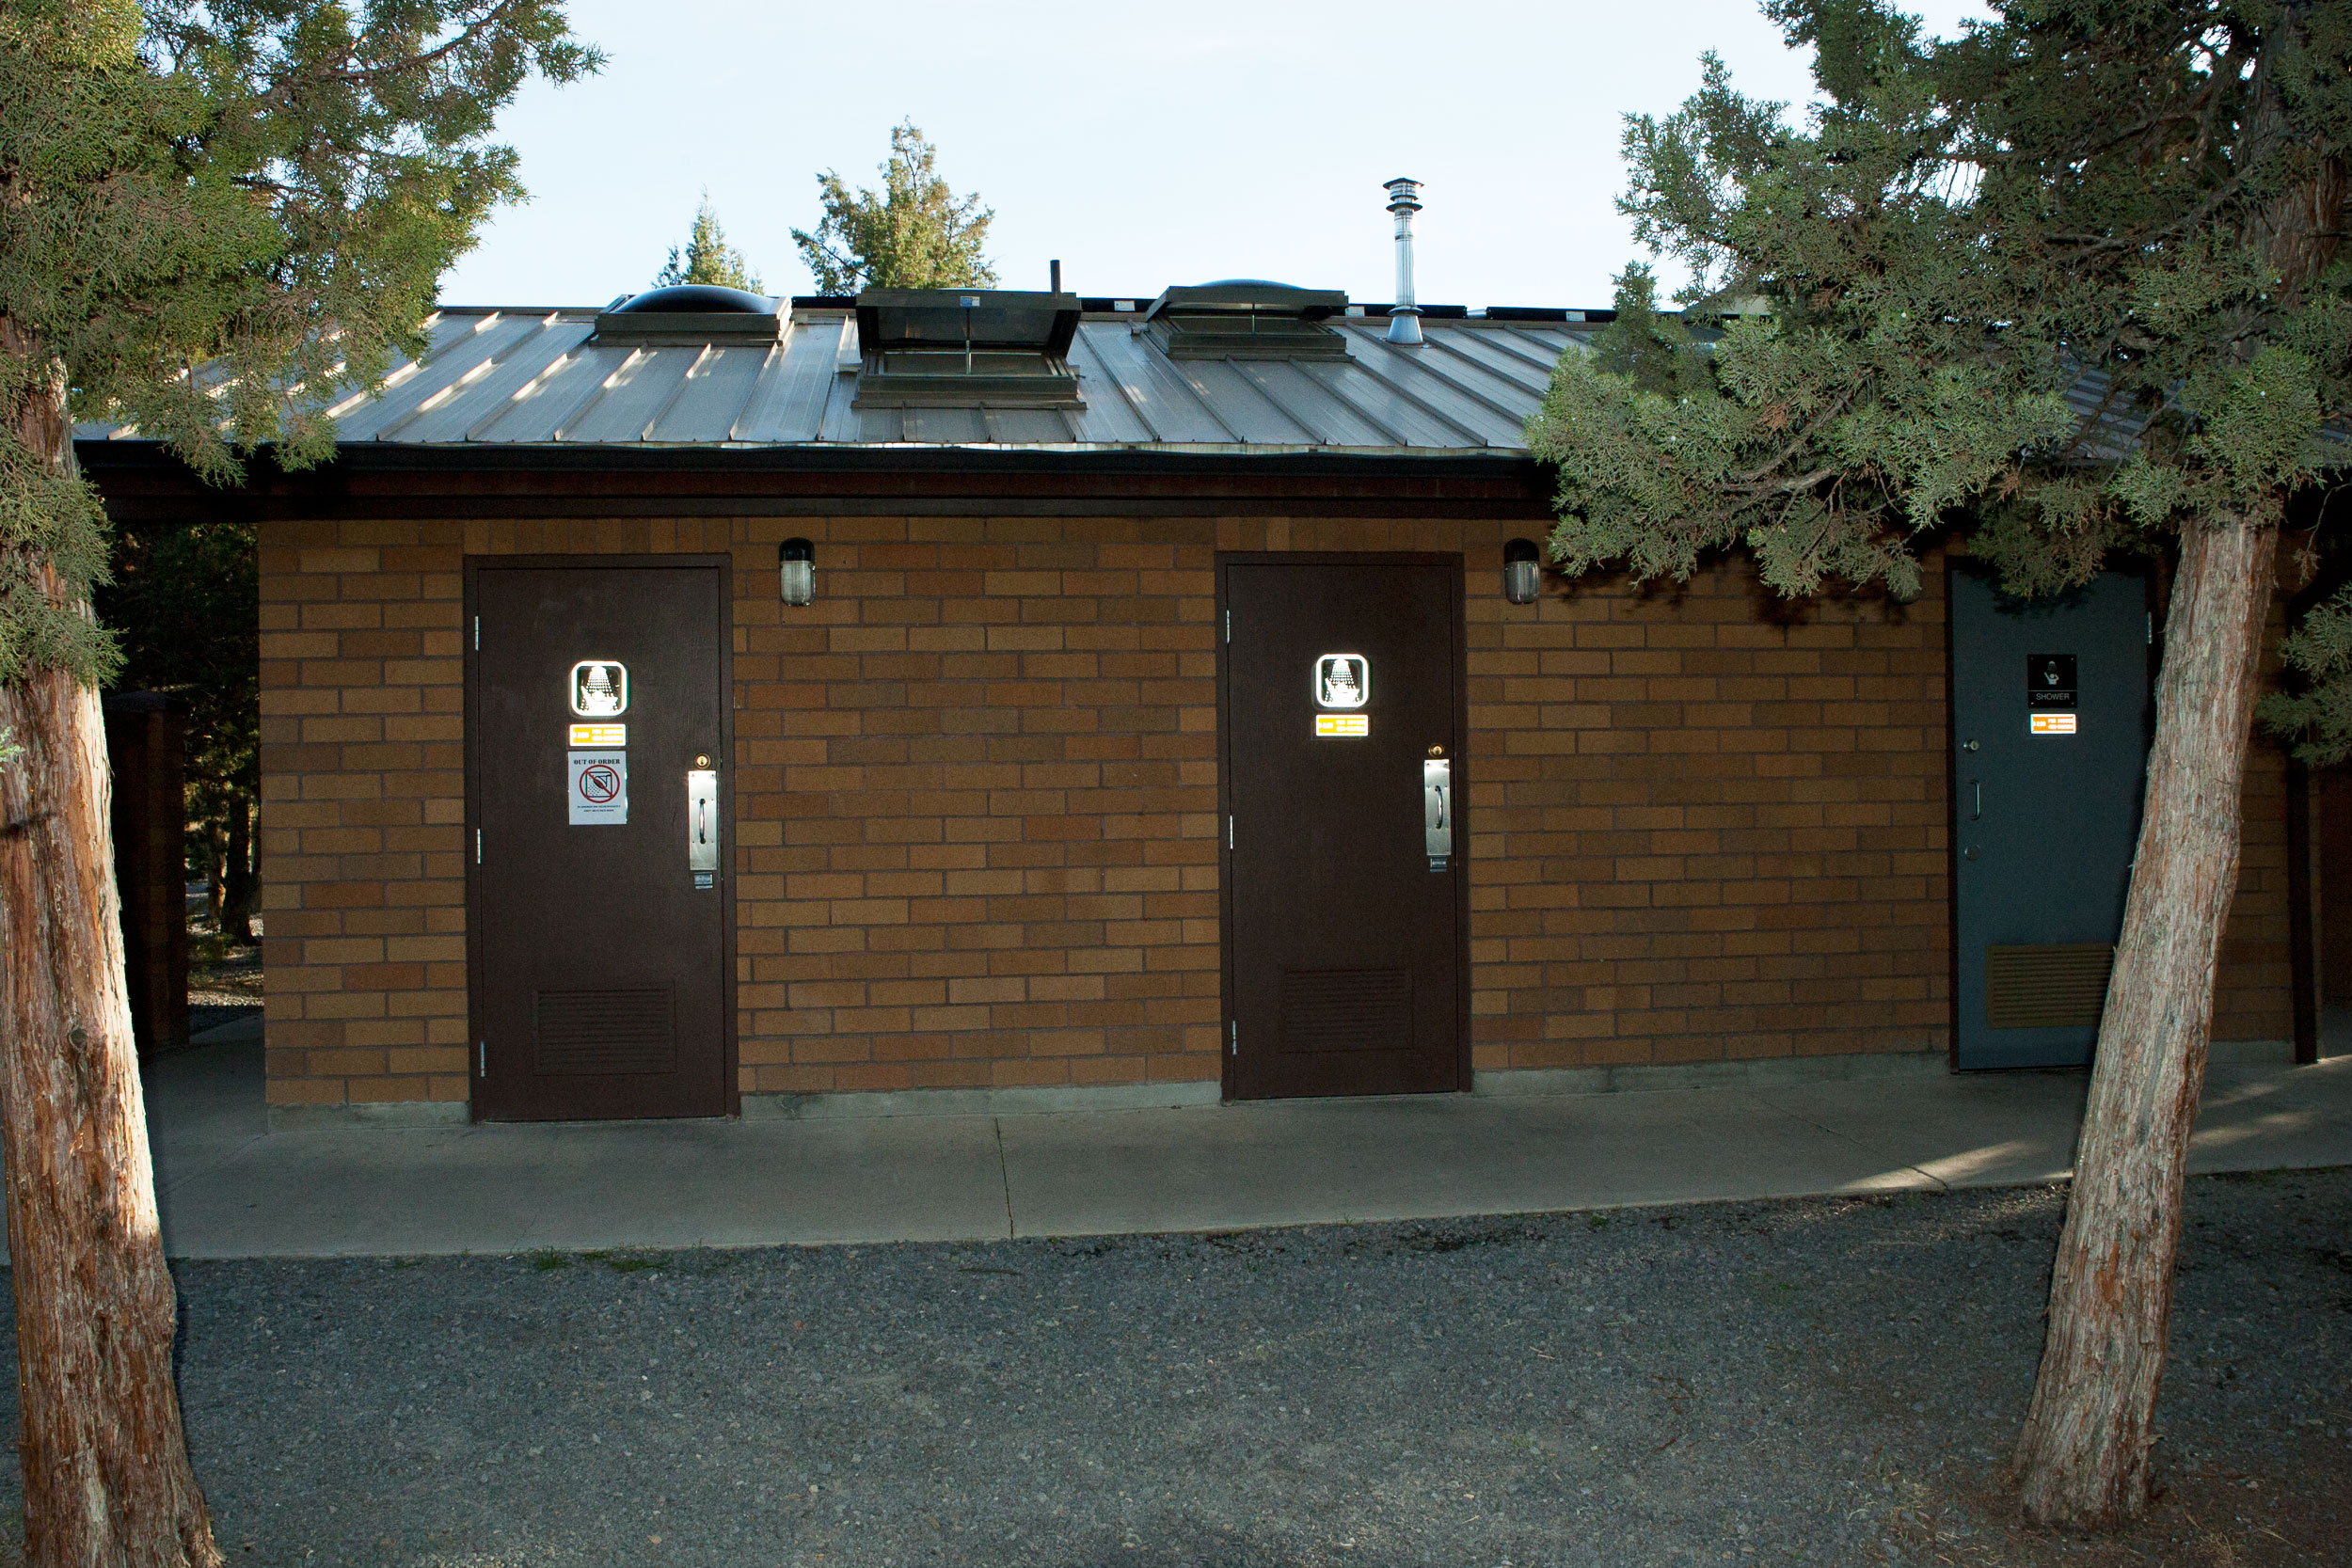 bathrooms and showers at the Bivy campground at Smith Rock State Park